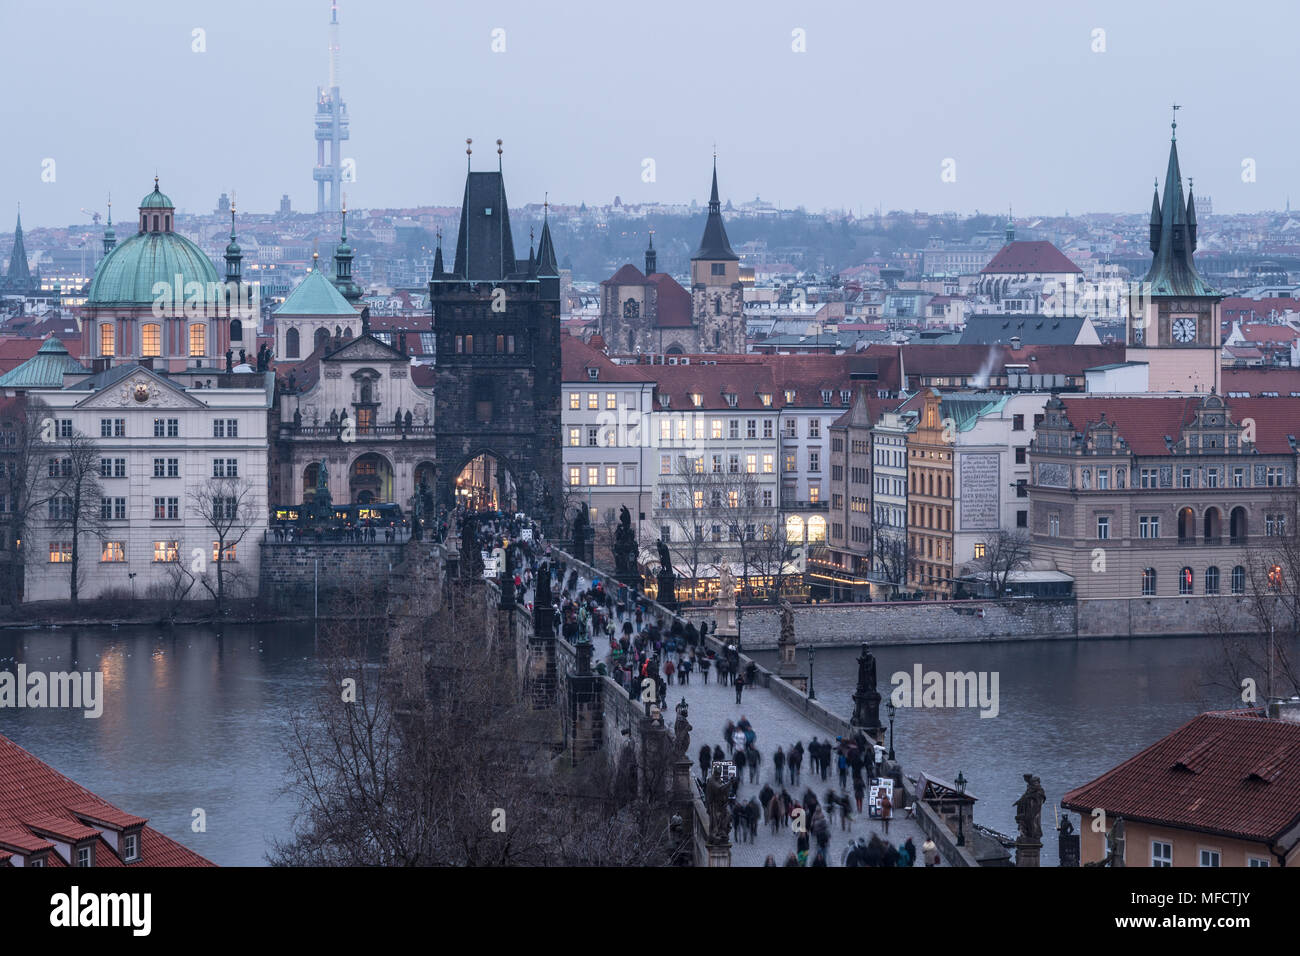 High angle view of the famous Charles Bridge and the old town tower and churches in Prague, Czech Republic capital city at nightfall - Stock Image